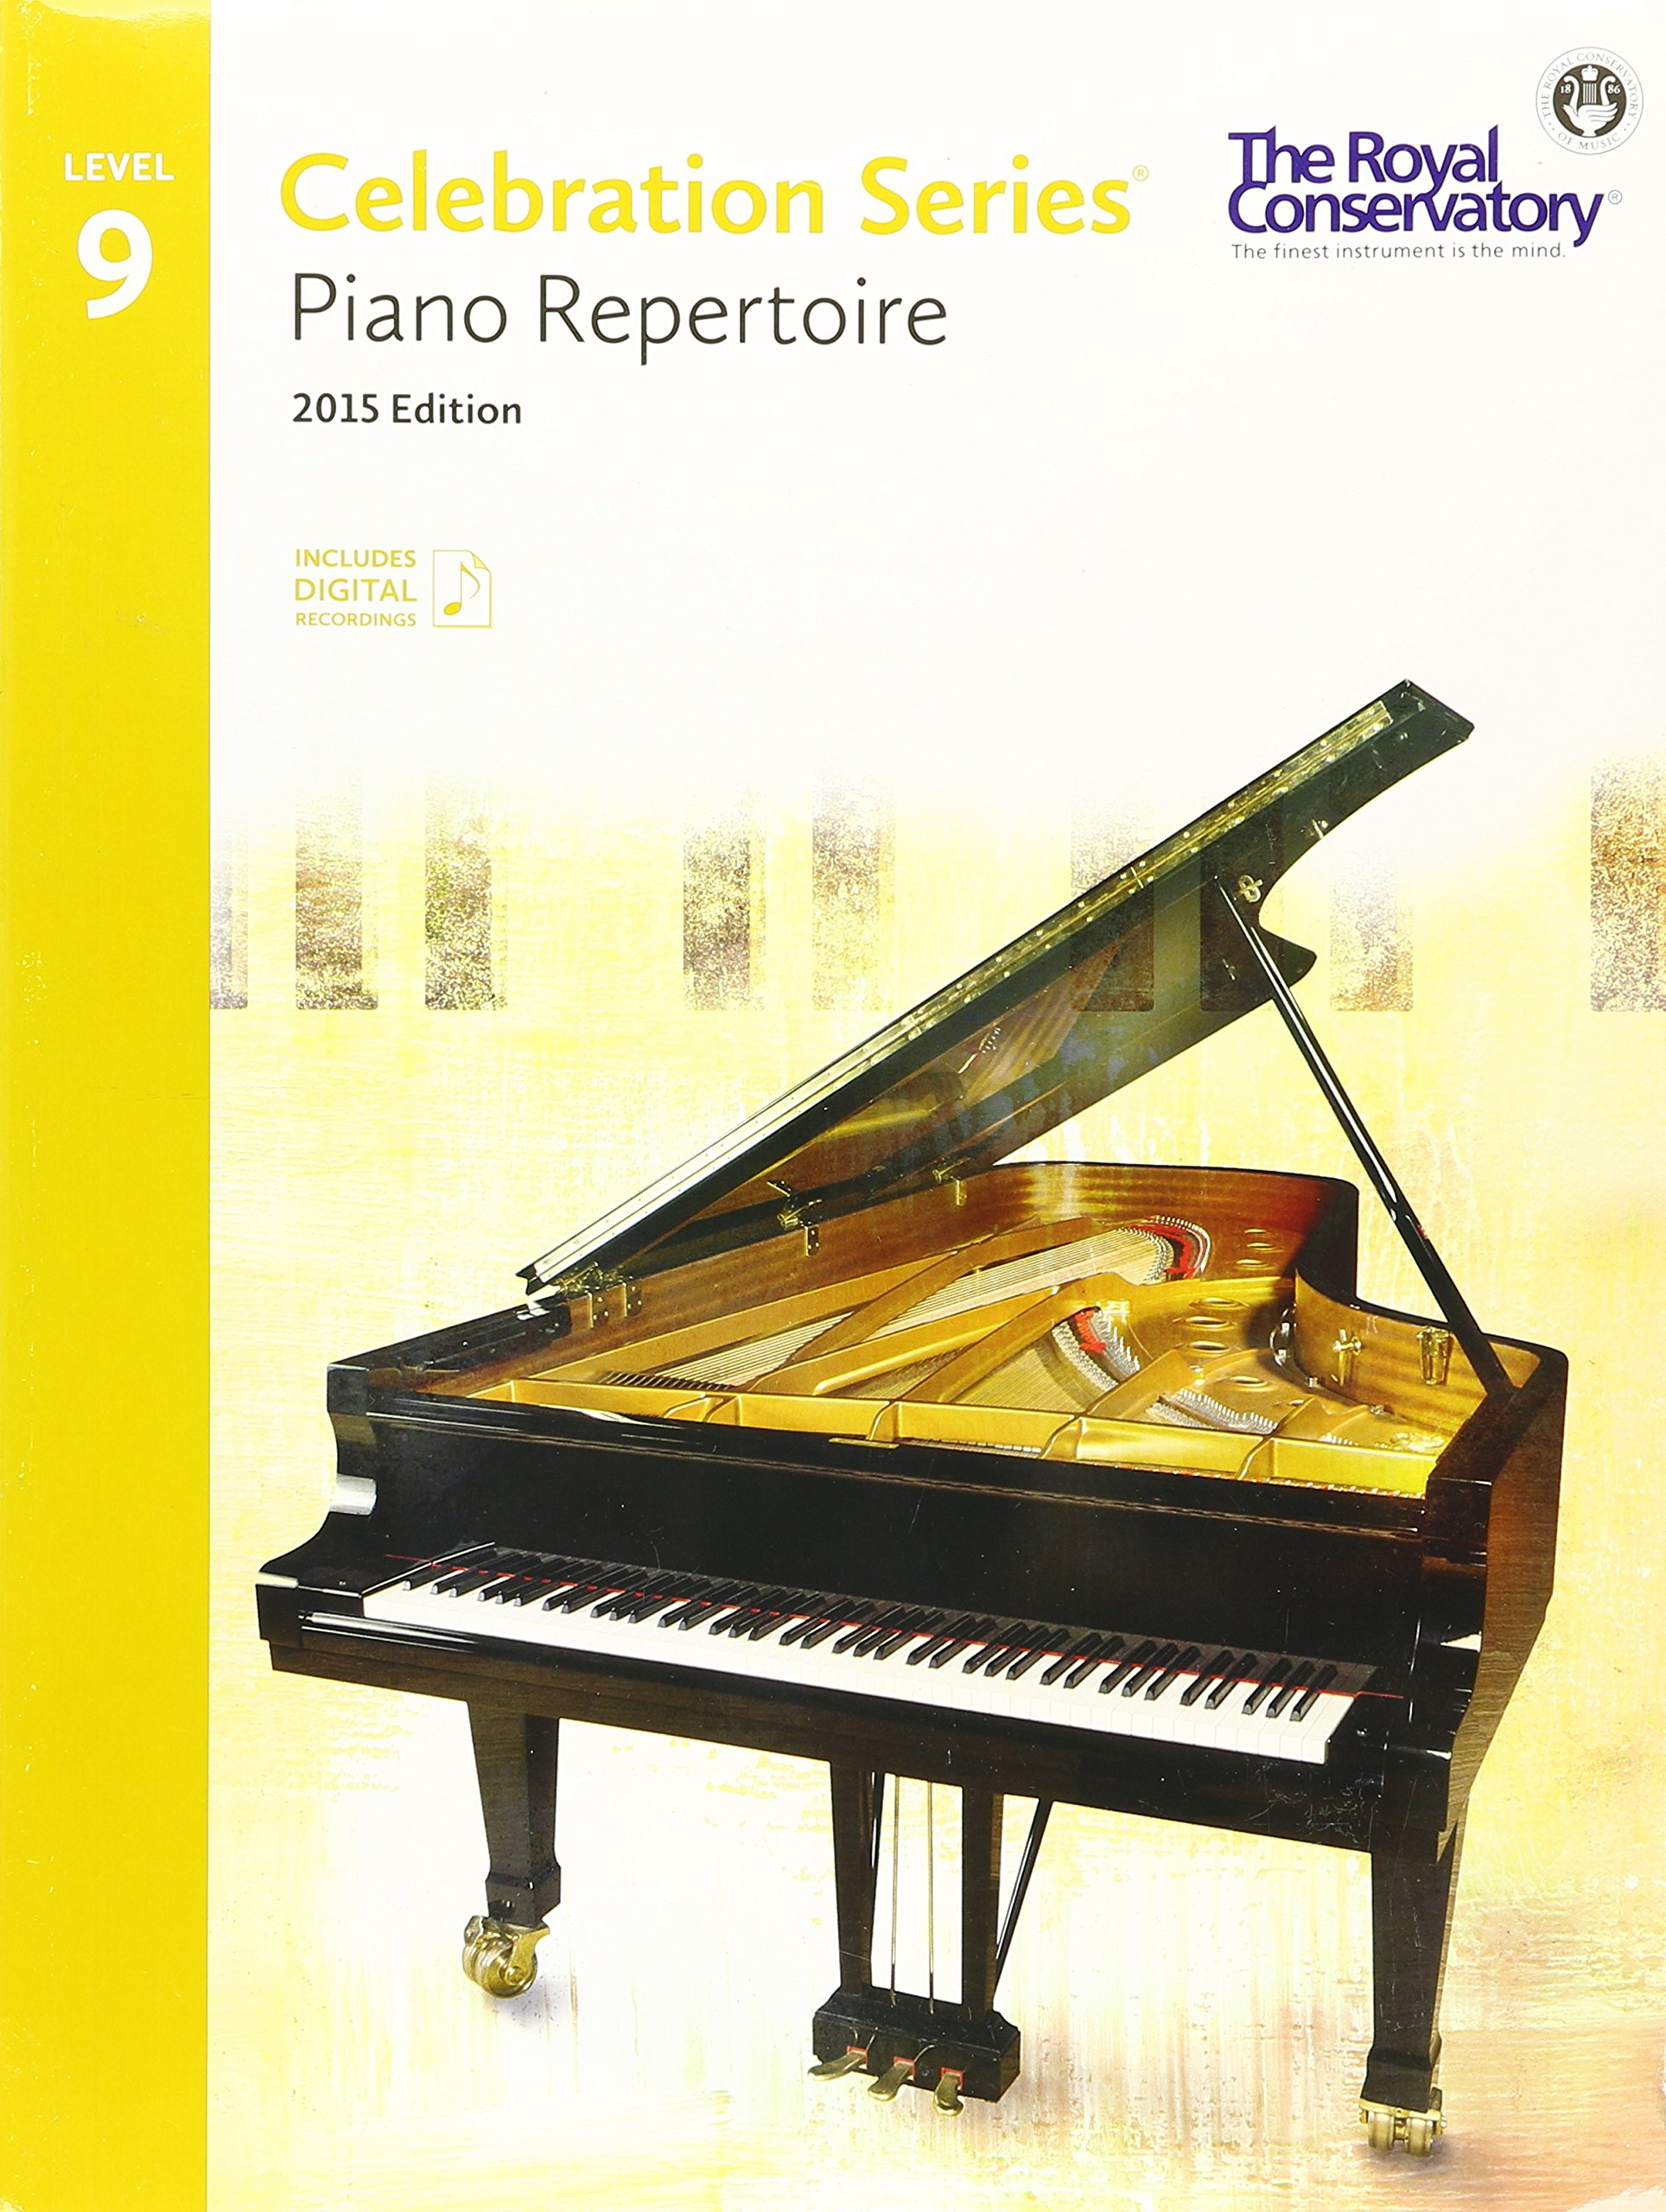 C5r09  Royal Conservatory Celebration Series  Piano Repertoire Level 9  Book 2015 Edition: Royal Conservatory: 9781554407170: Amazon: Books